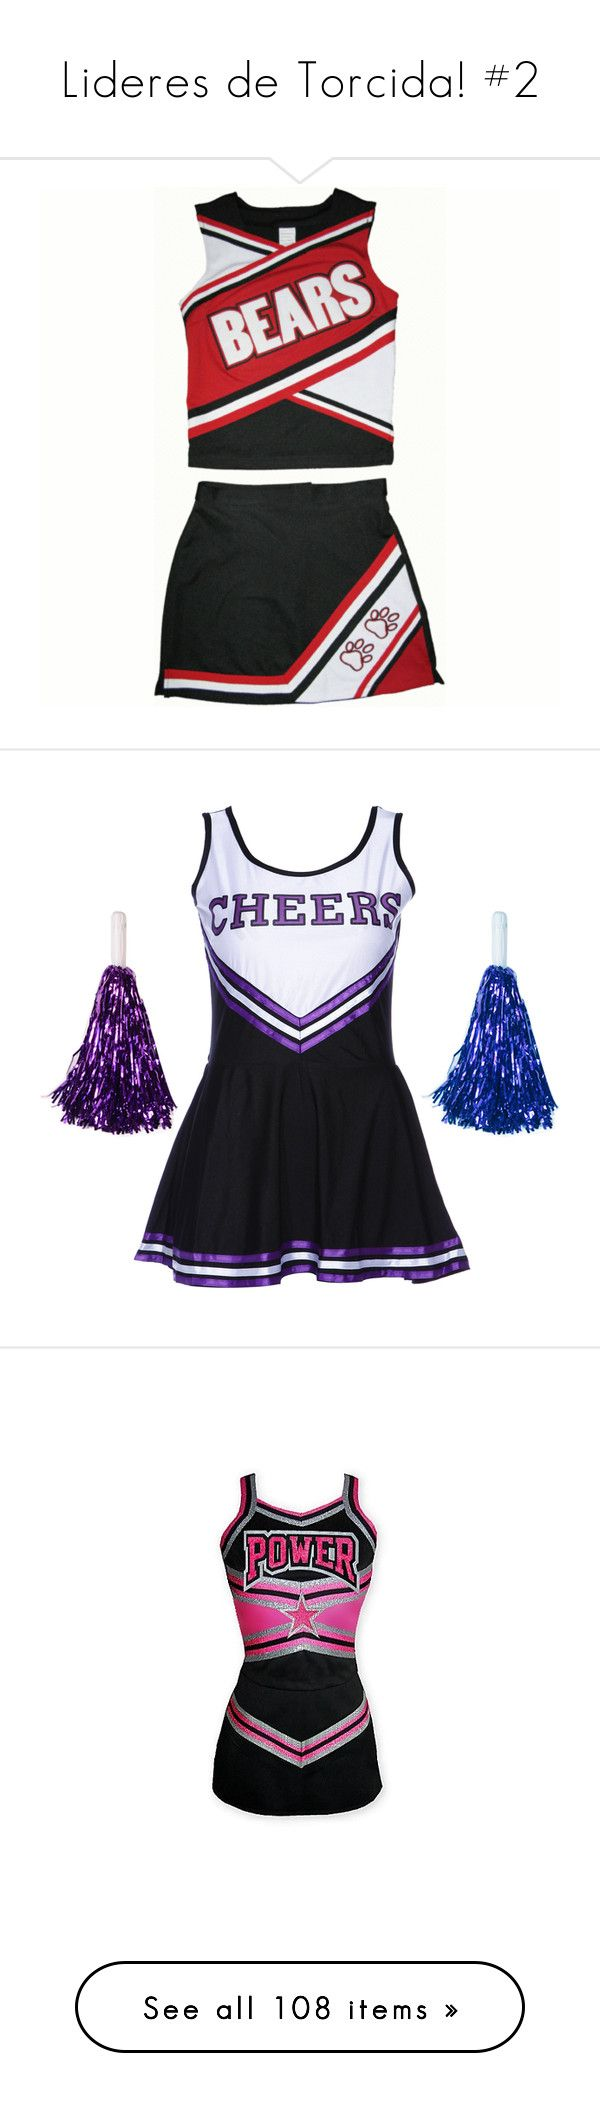 """Lideres de Torcida! #2"" by franca-helo ❤ liked on Polyvore featuring cheer, cheerleading, sports, uniform, dresses, cheerleader, glee, vestidos, outfit and tops"